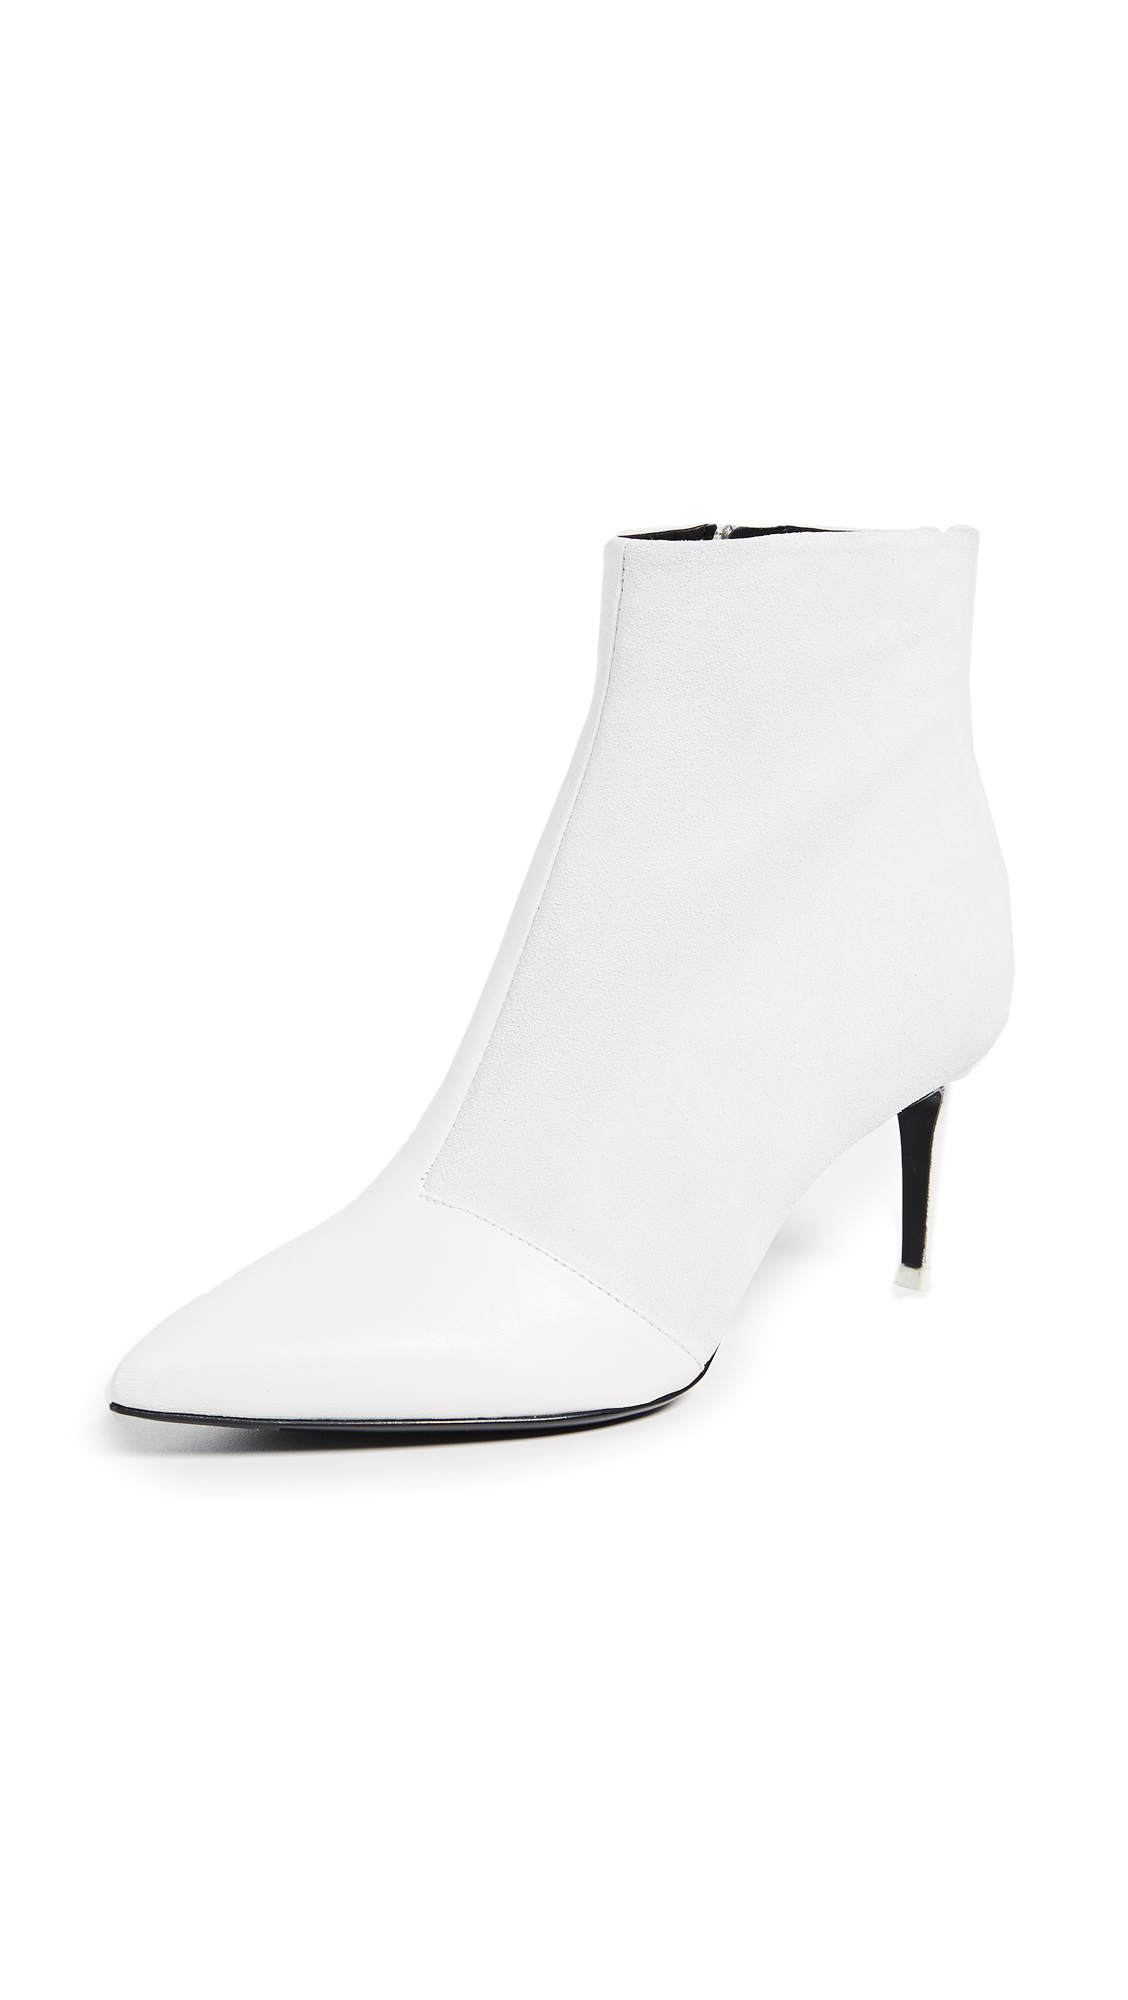 Rag & Bone Beha Booties - White